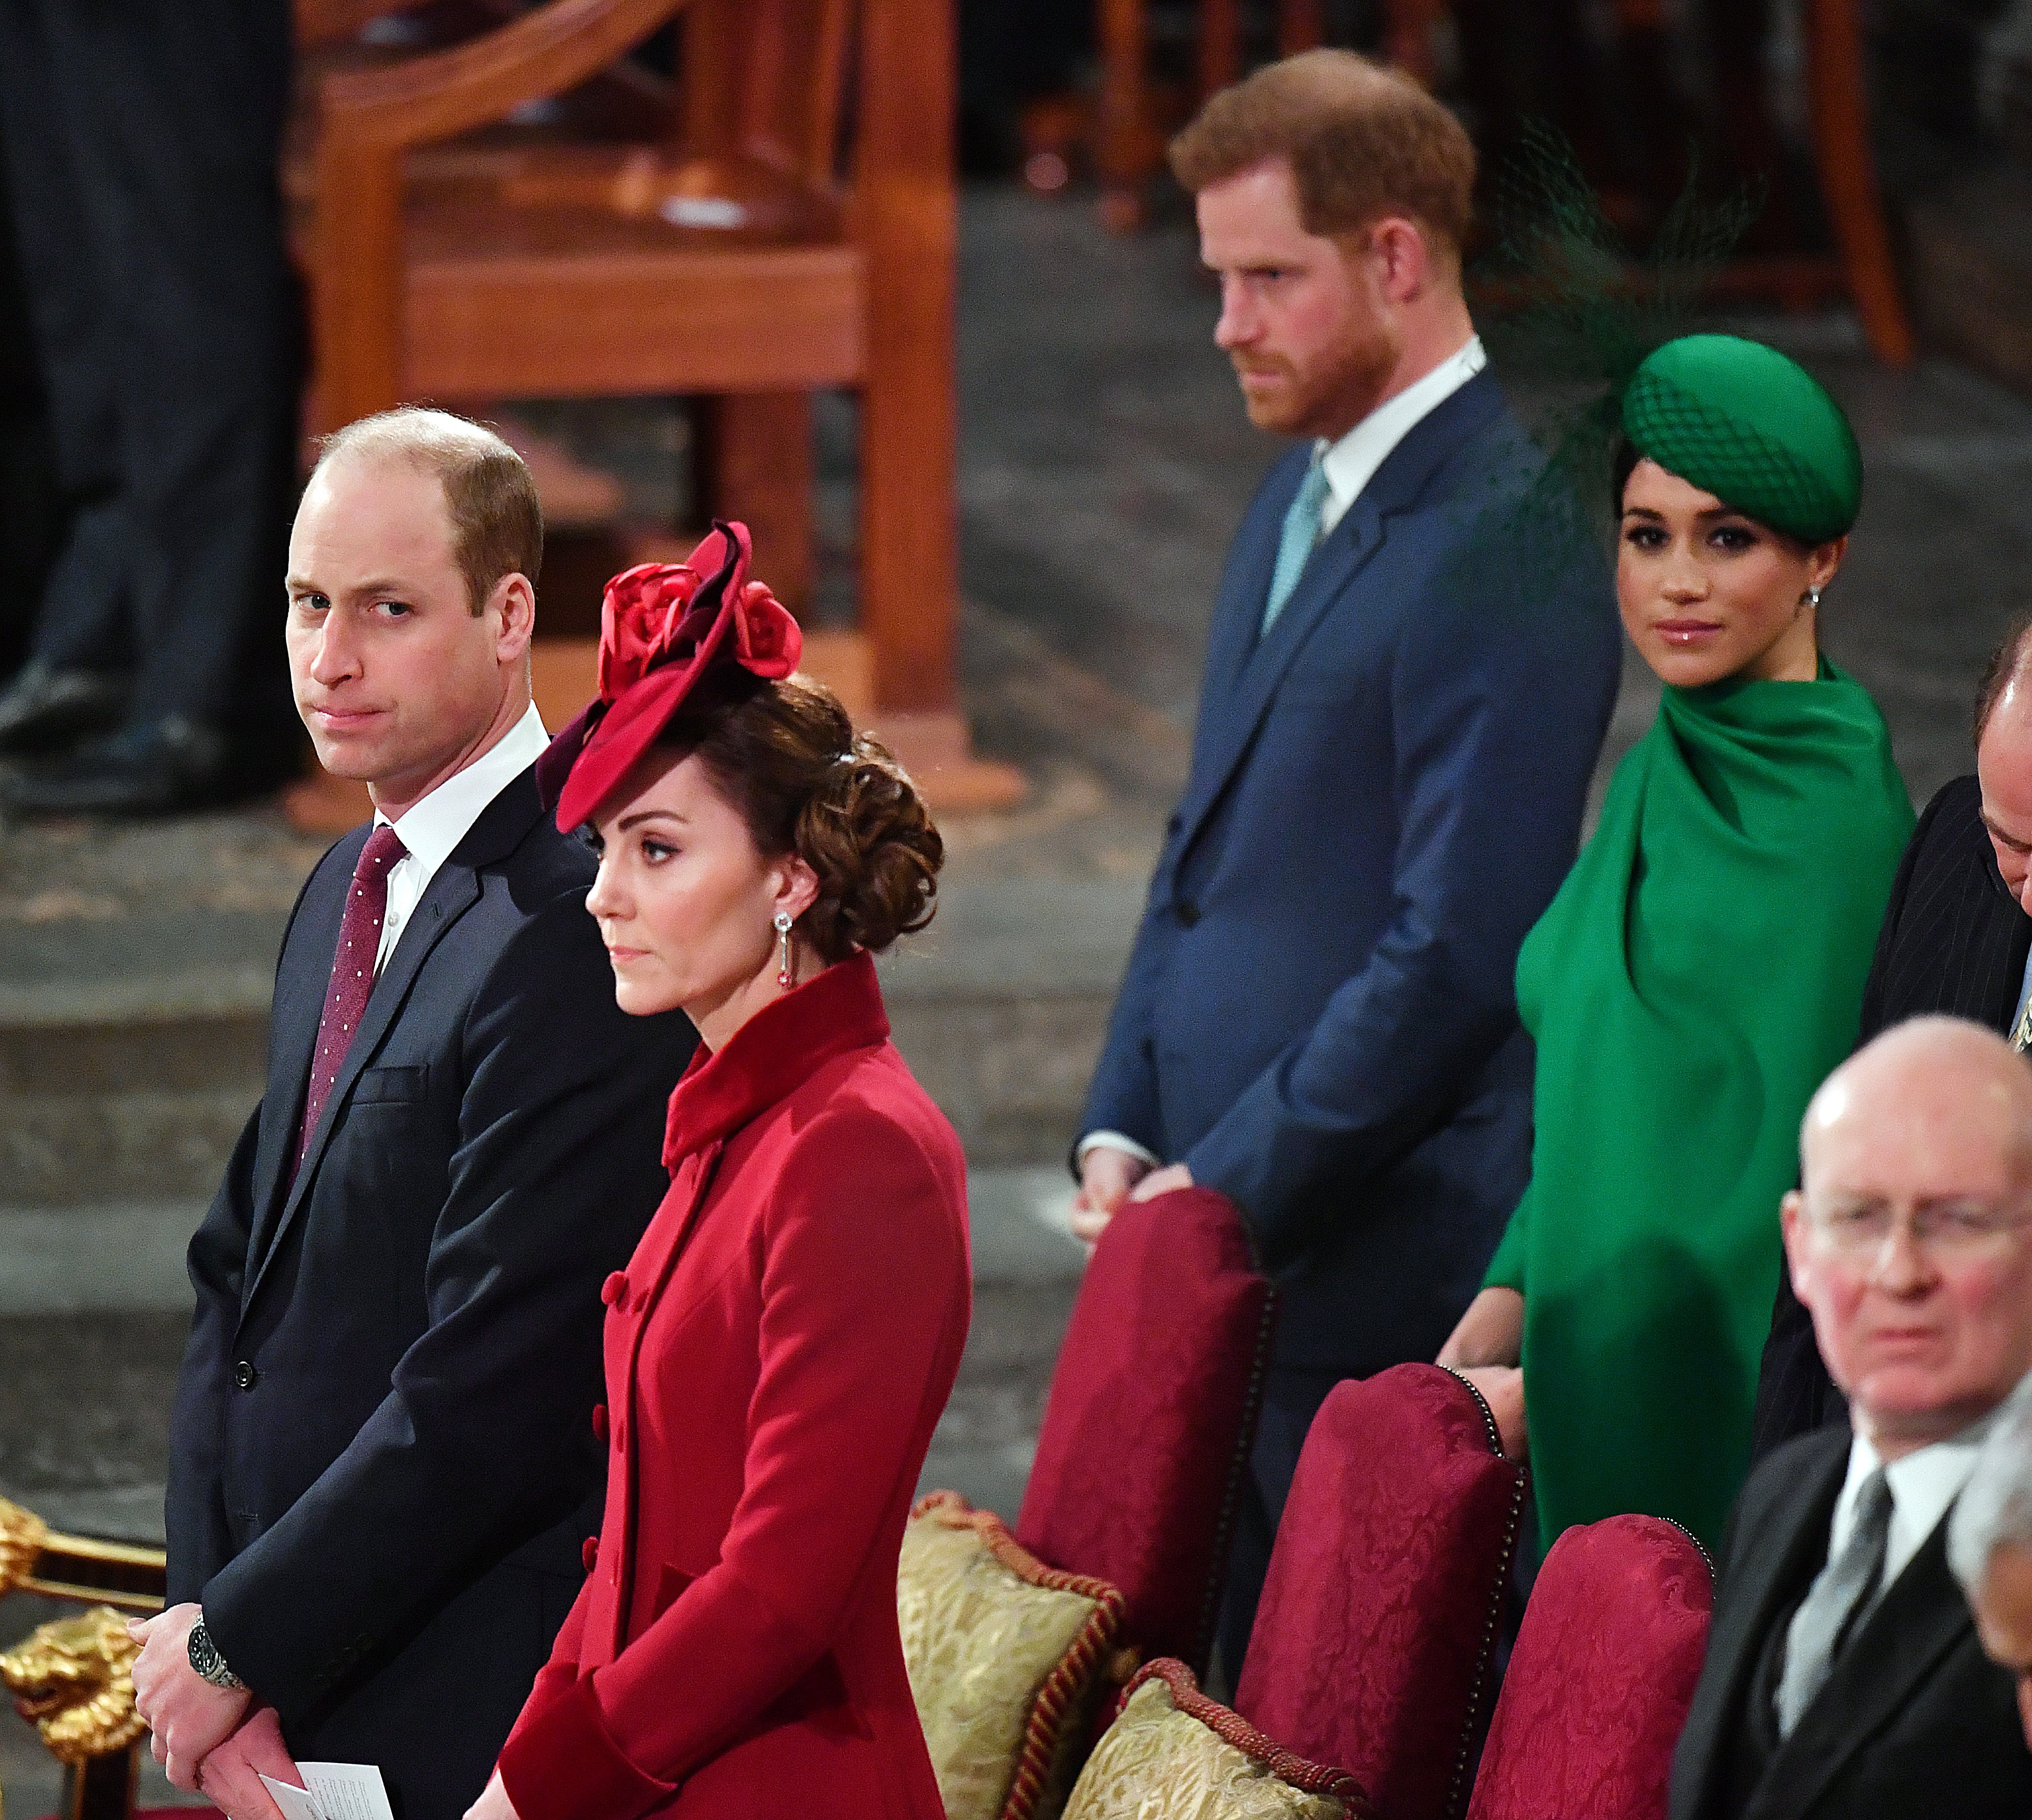 Prince William, Kate Middleton, Prince Harry, and Meghan Markle attend the Commonwealth Day Service 2020 on March 9, 2020 in London, England   Photo: Getty Images